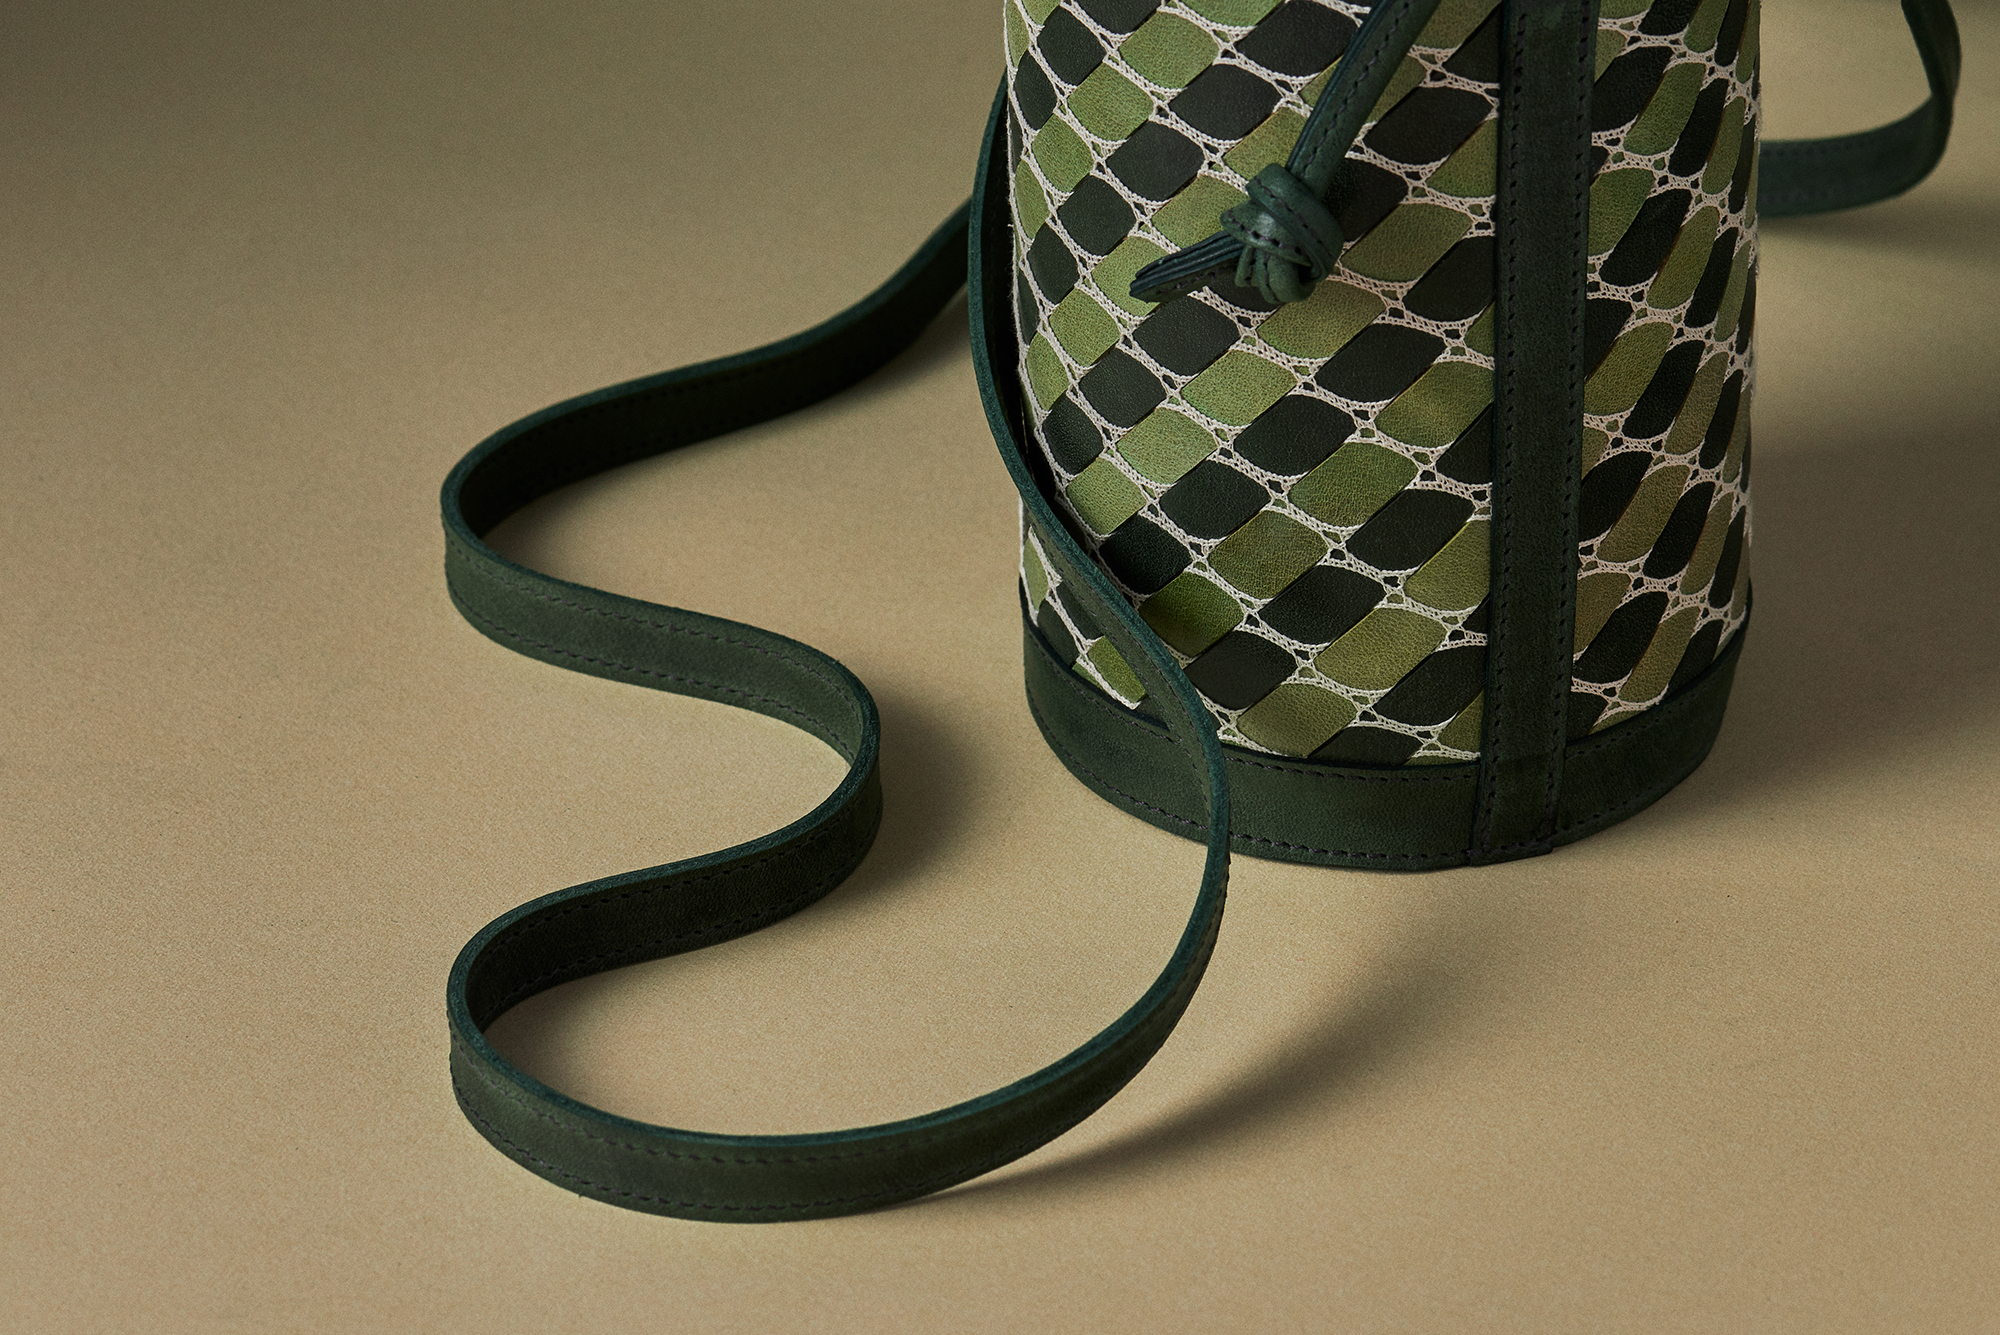 The Barrel Bag in Verde and Lattuga